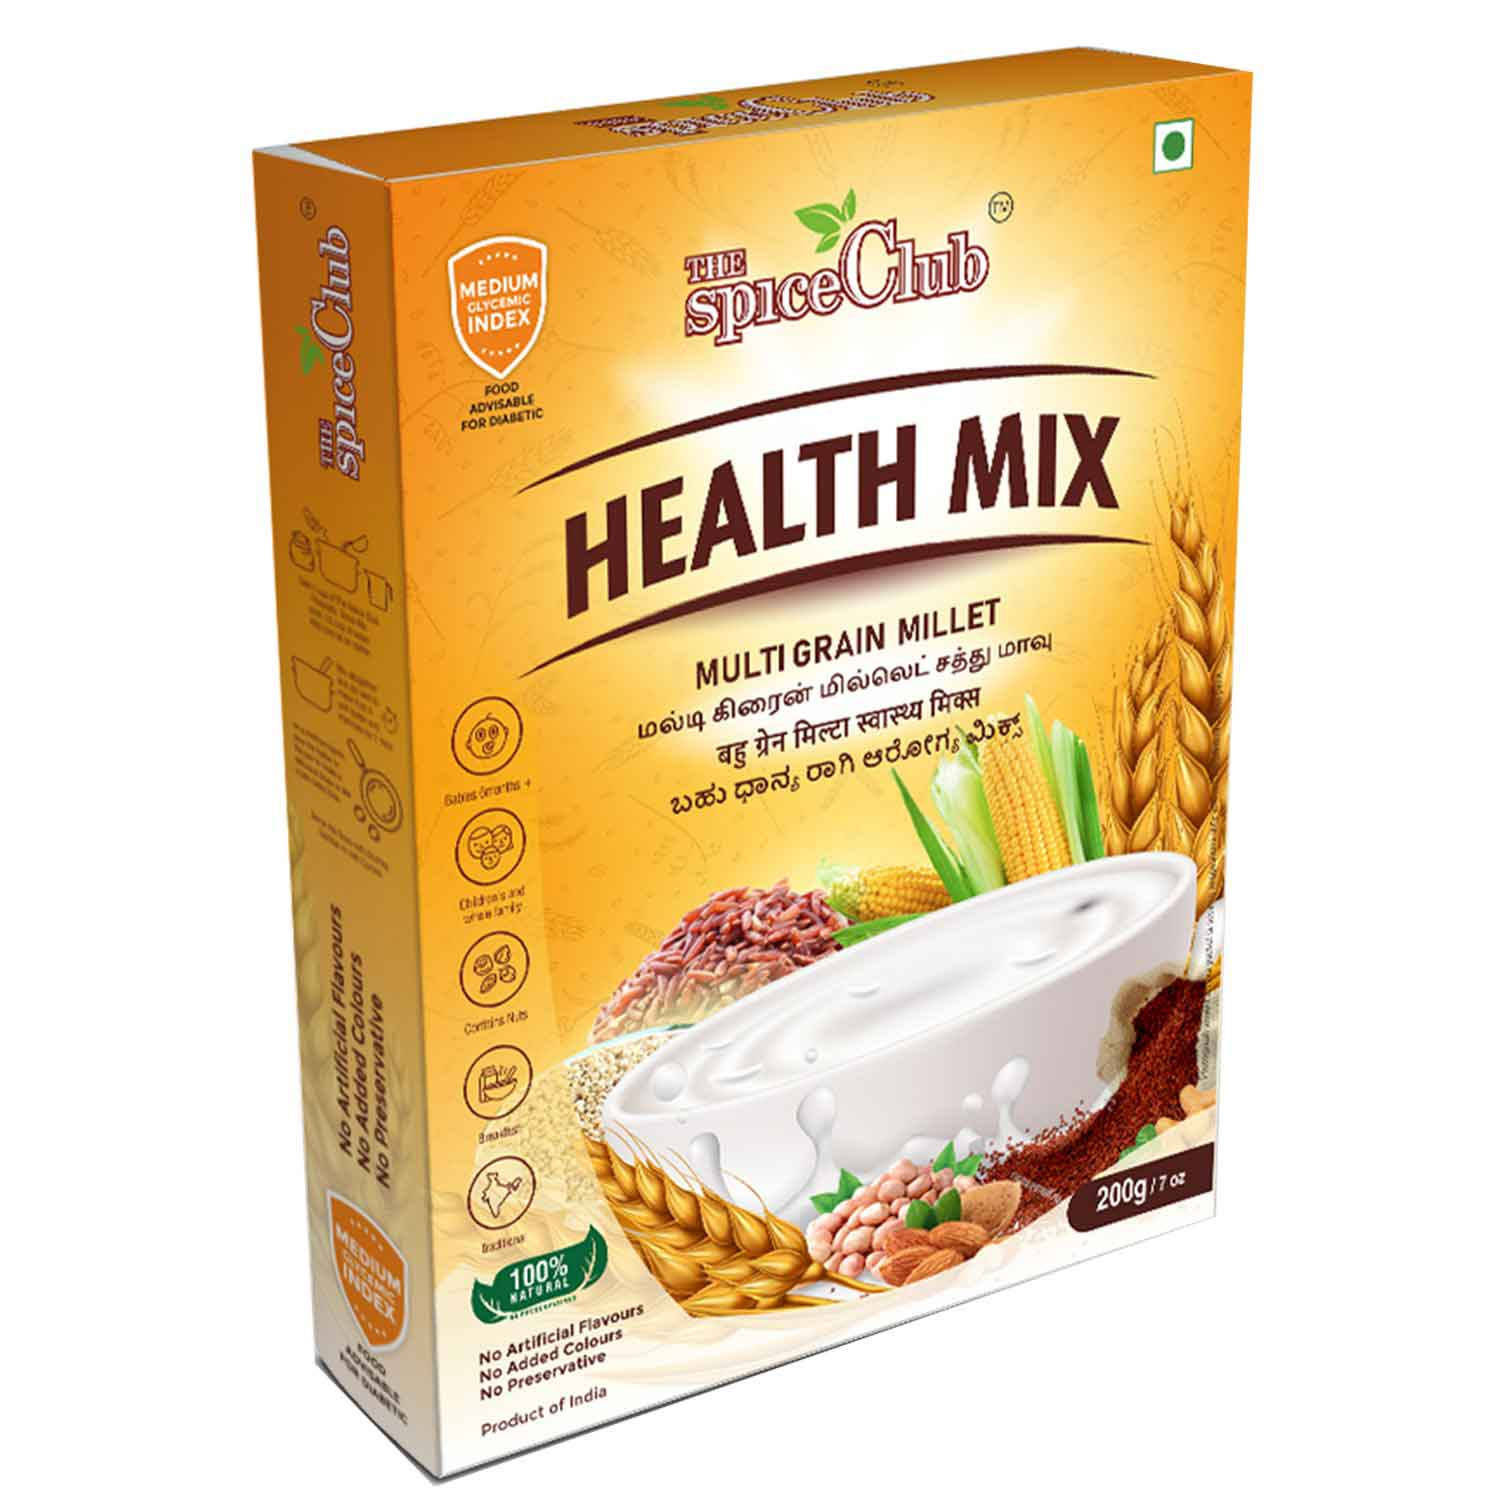 Multi grain Millet Health Mix